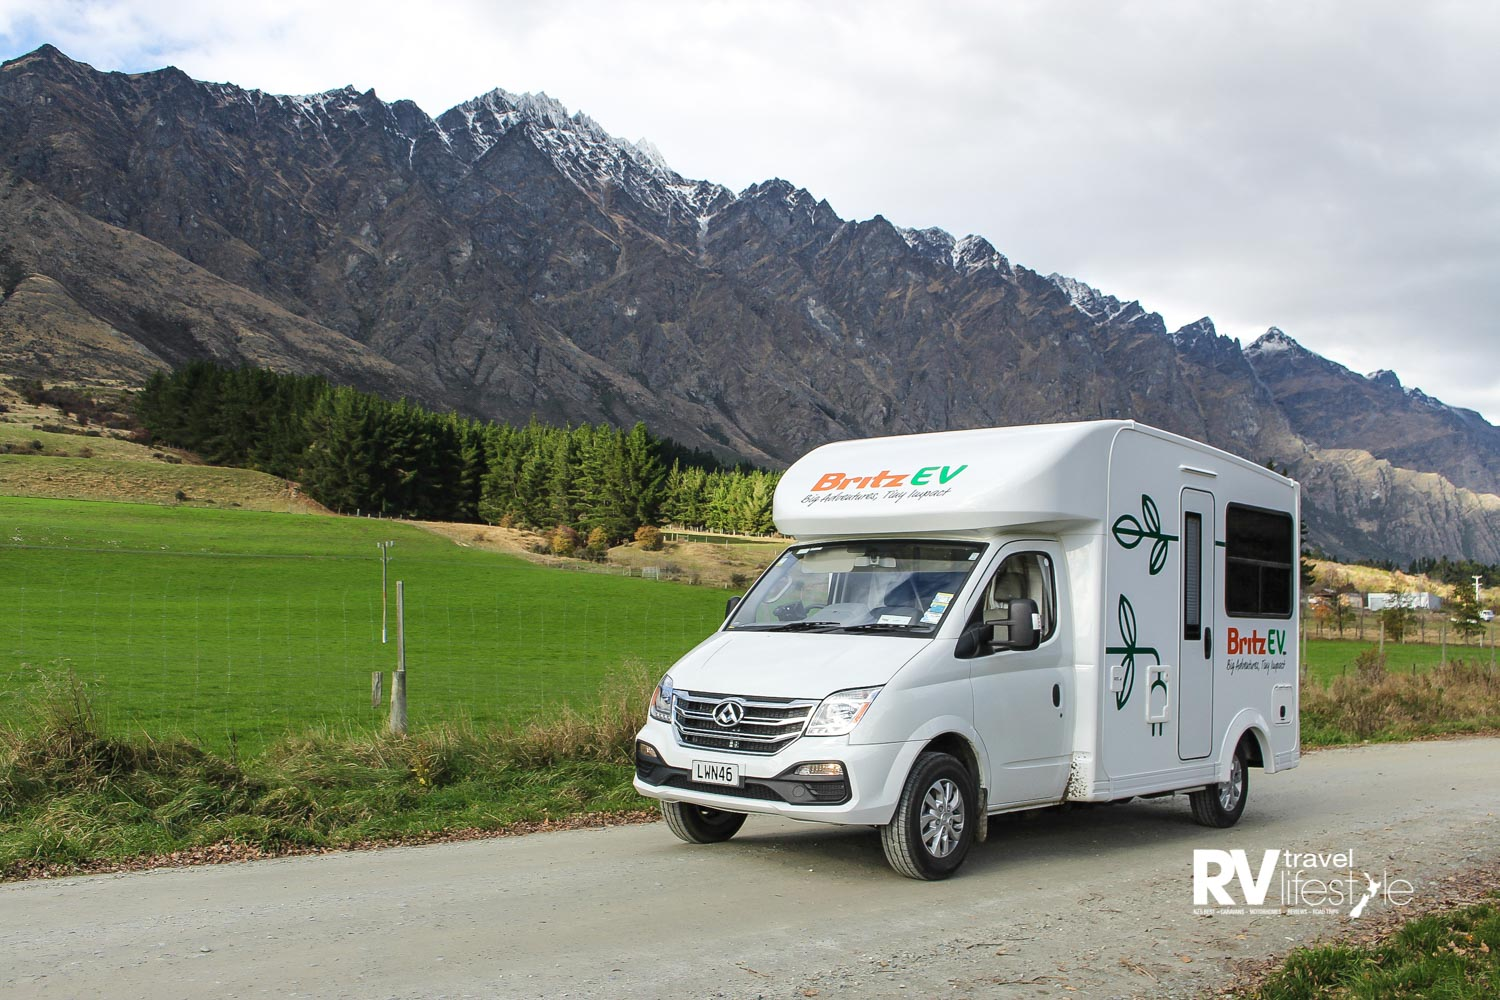 The Britz eVolve almost back home. With the Remarkables as a backdrop we complete our nearly three days with the vehicle